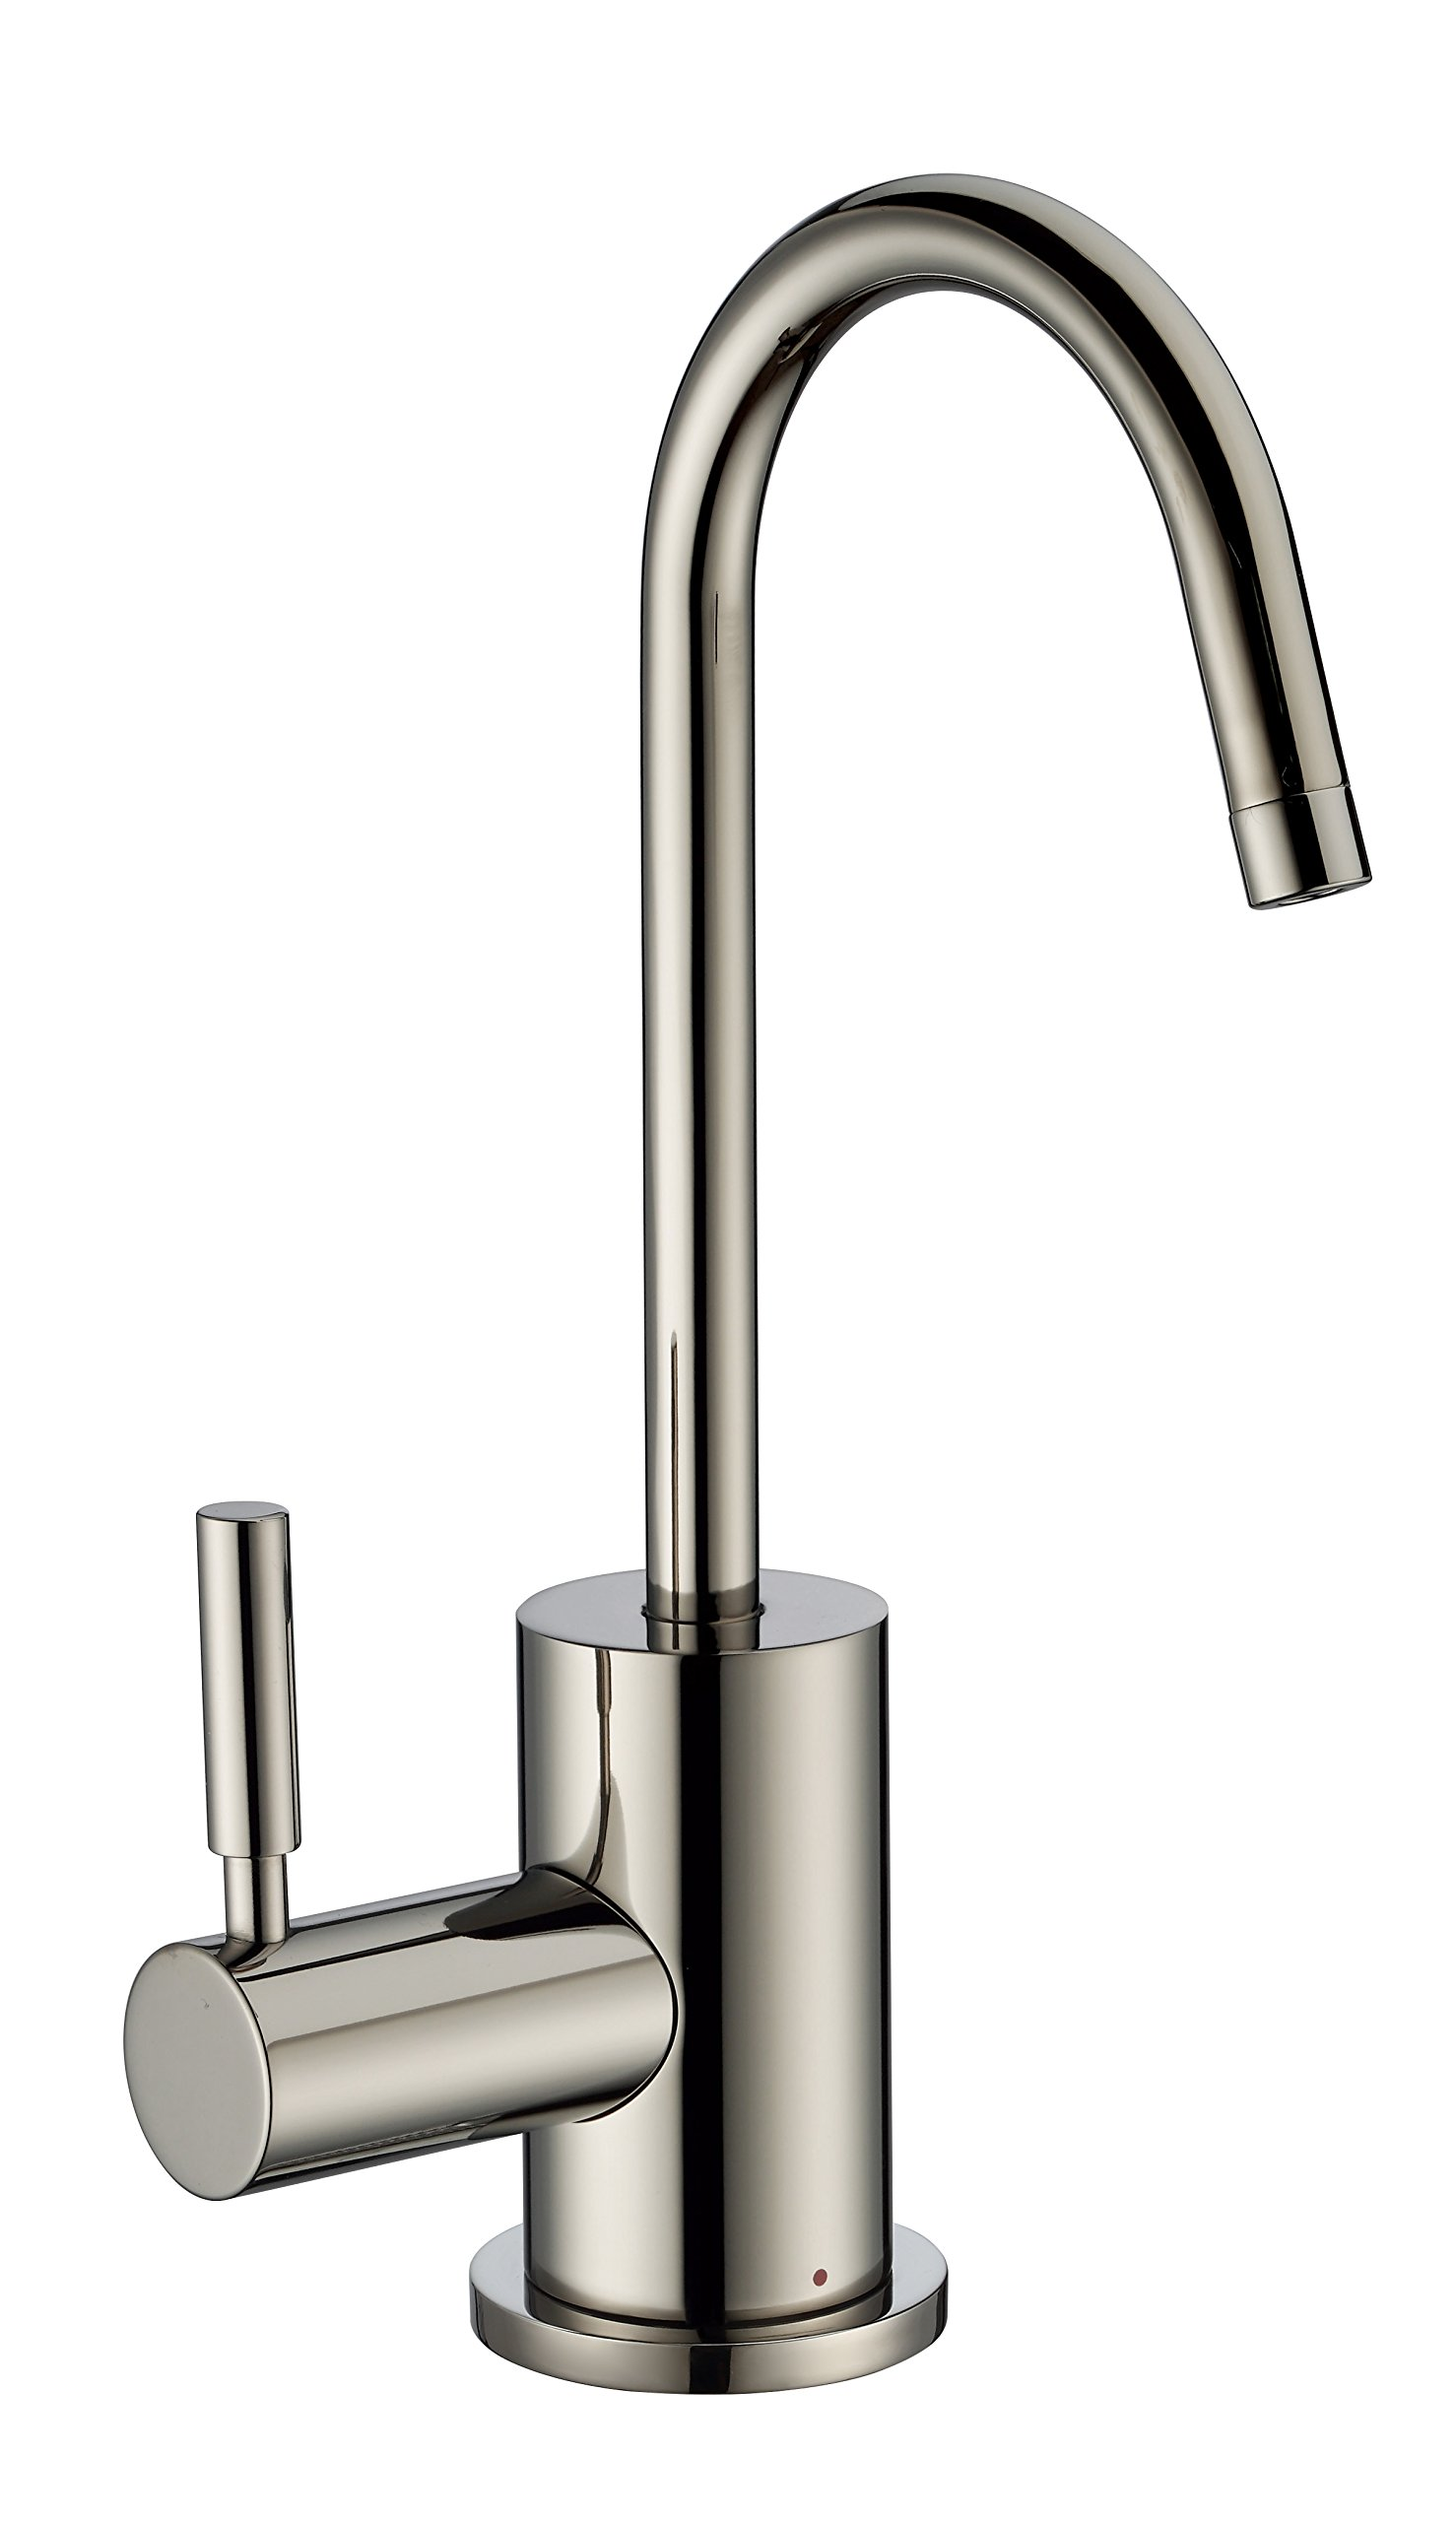 Whitehaus Collection WHFH-H1010-PN Forever Point of Use Instant Hot Water Faucet with Contemporary Spout and Self Closing Handle, Polished Nickel